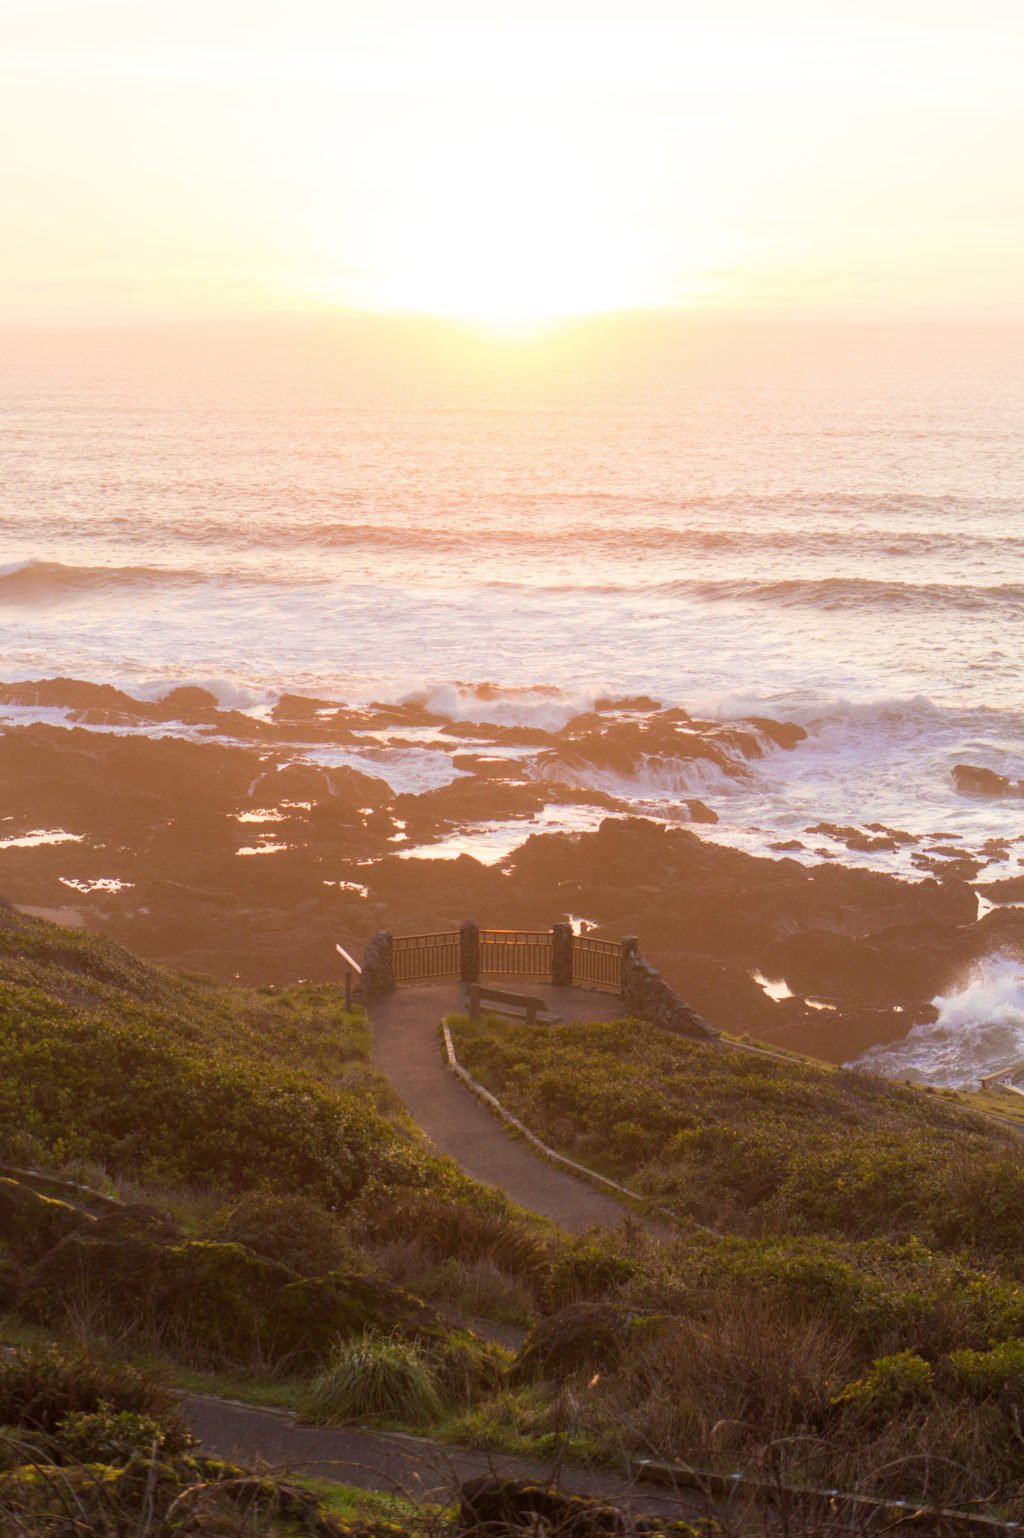 Sunset on the Coast •25 Photos to Spark Your Visit to the Oregon Coast | The Wanderful Me